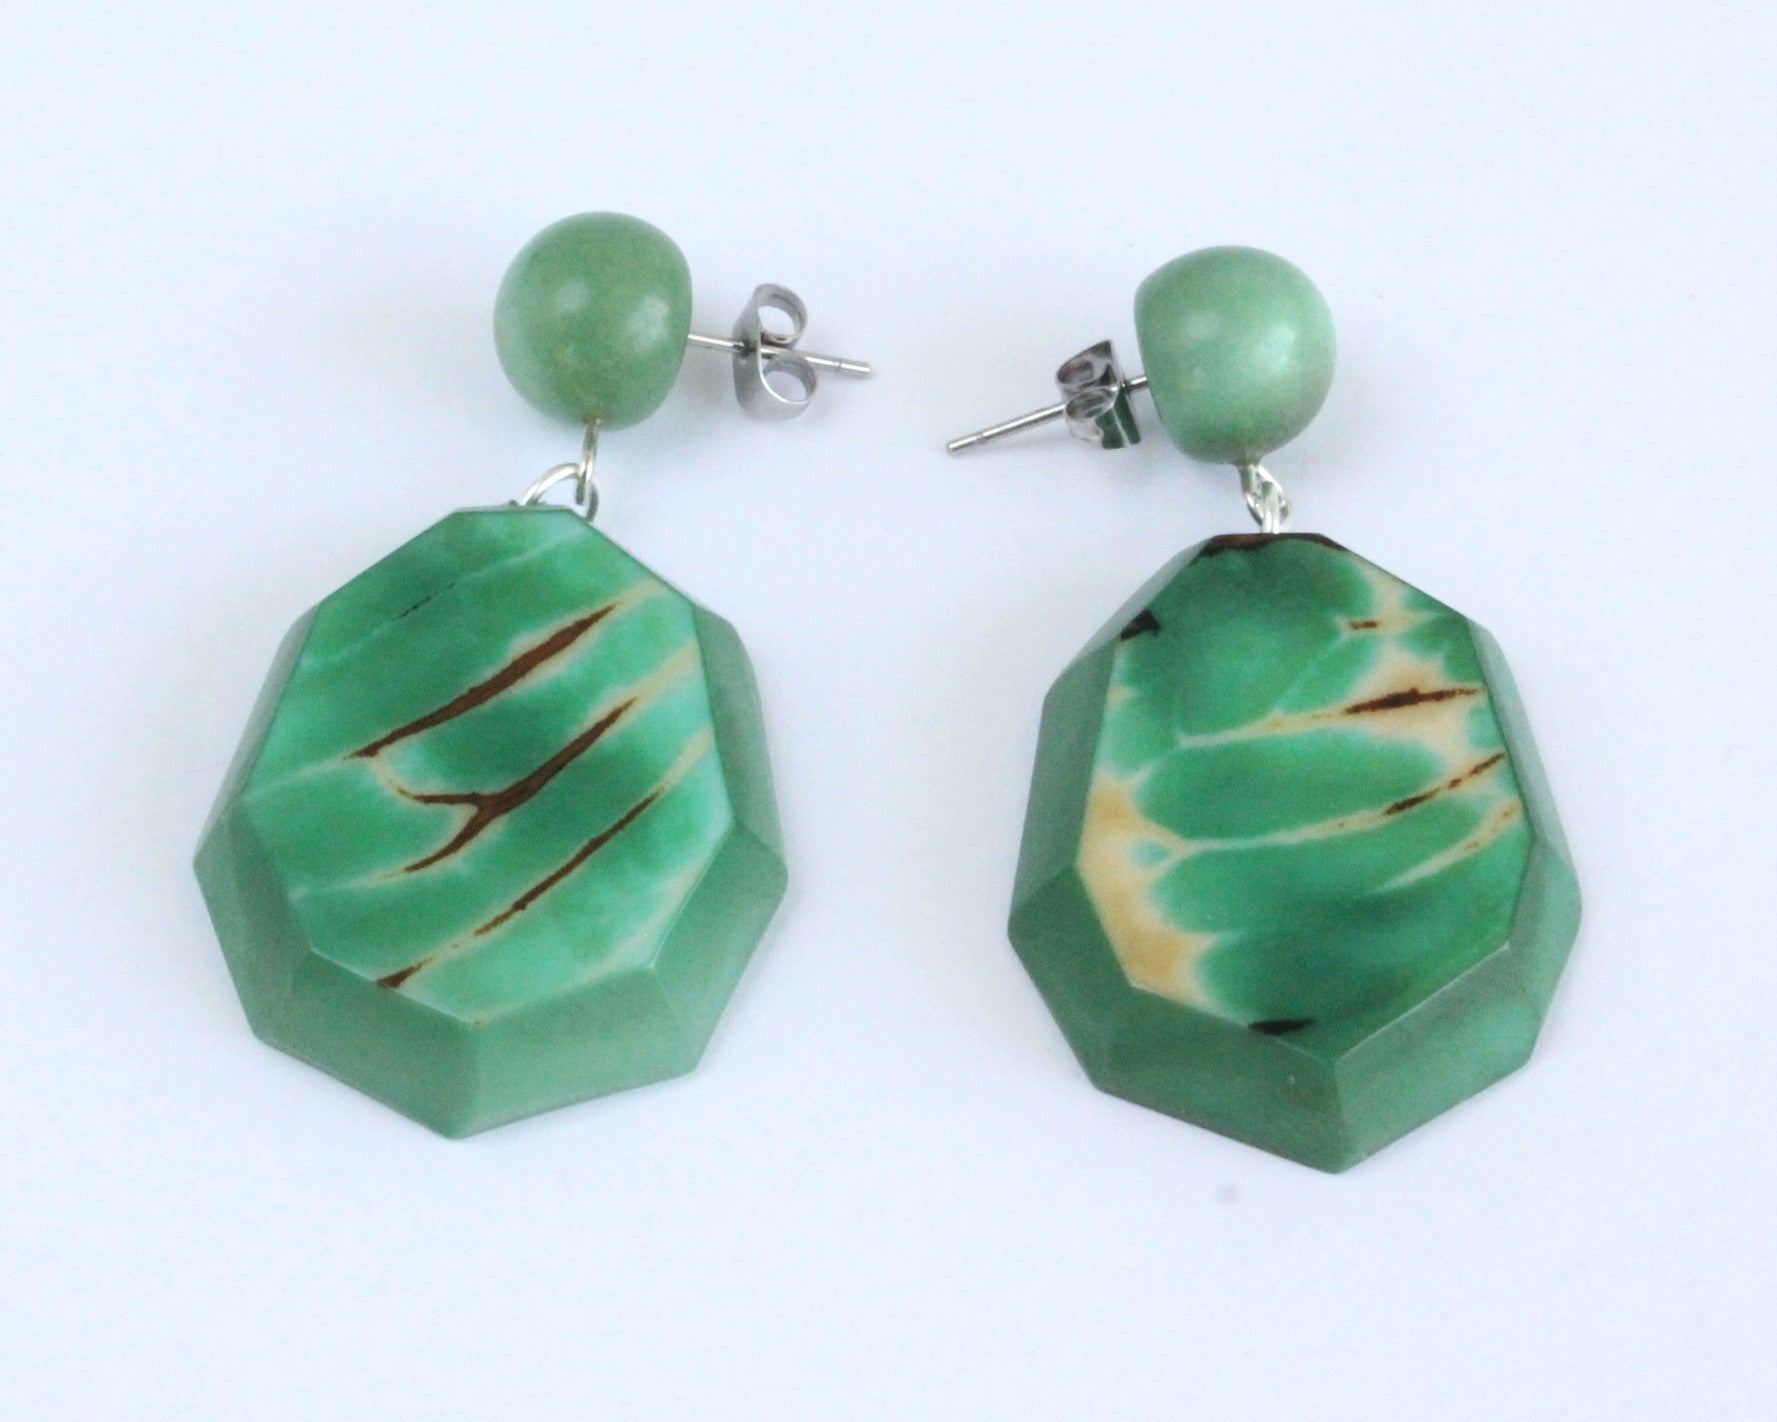 Handmade earring, push back, tagua, colourful, green